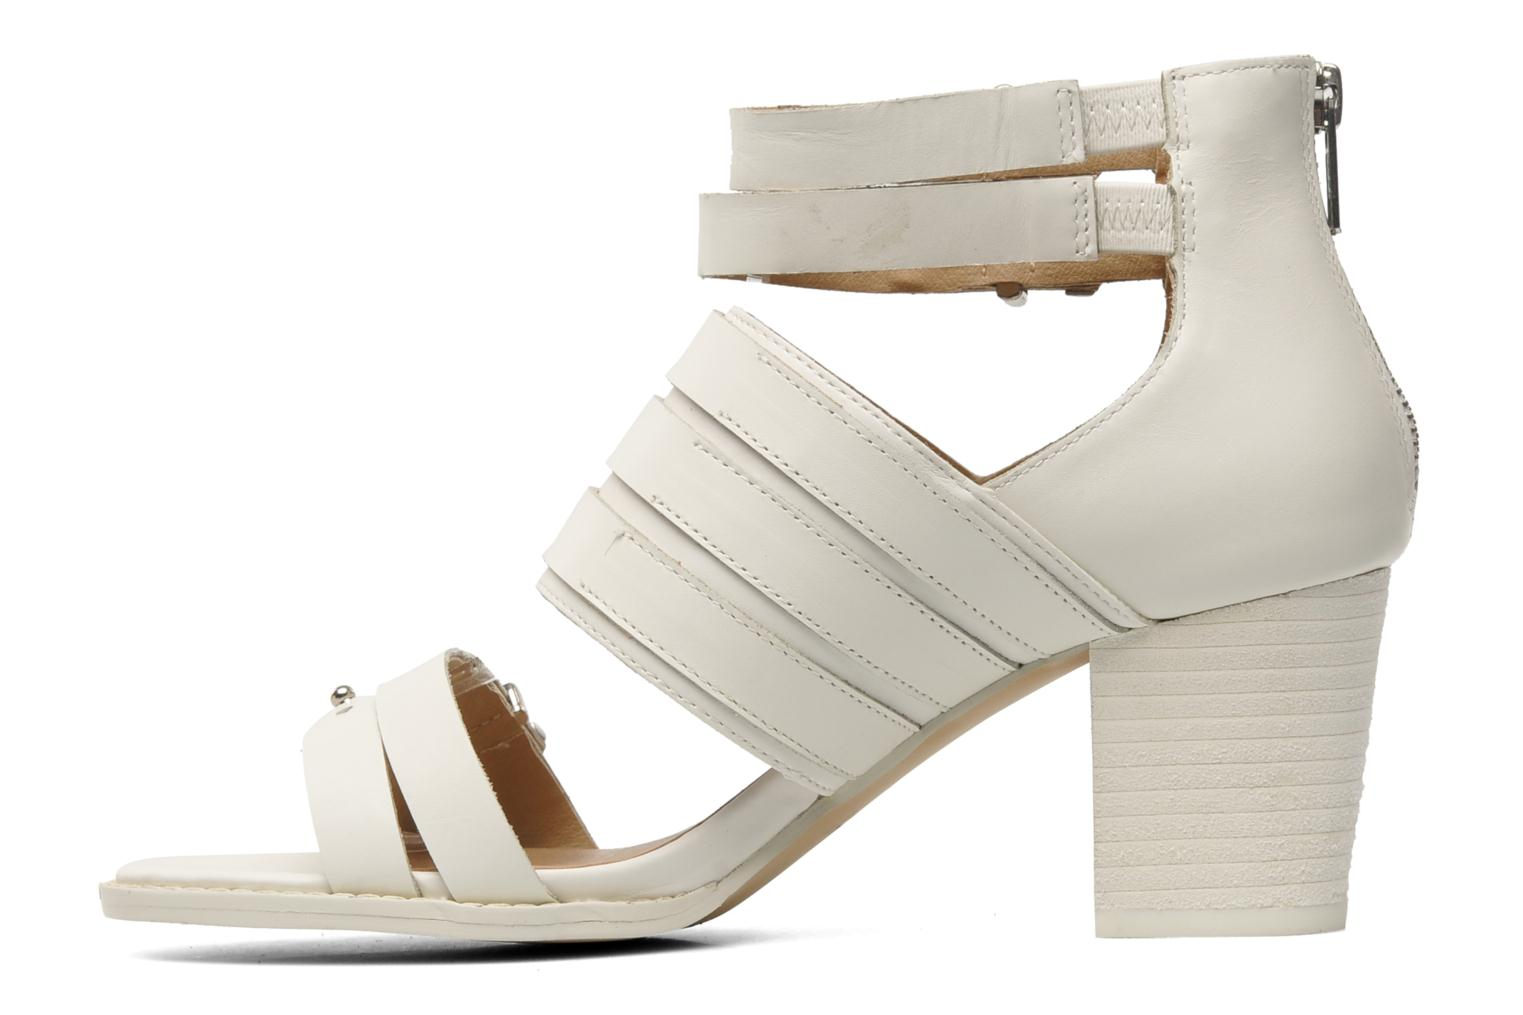 VALVORI White leather